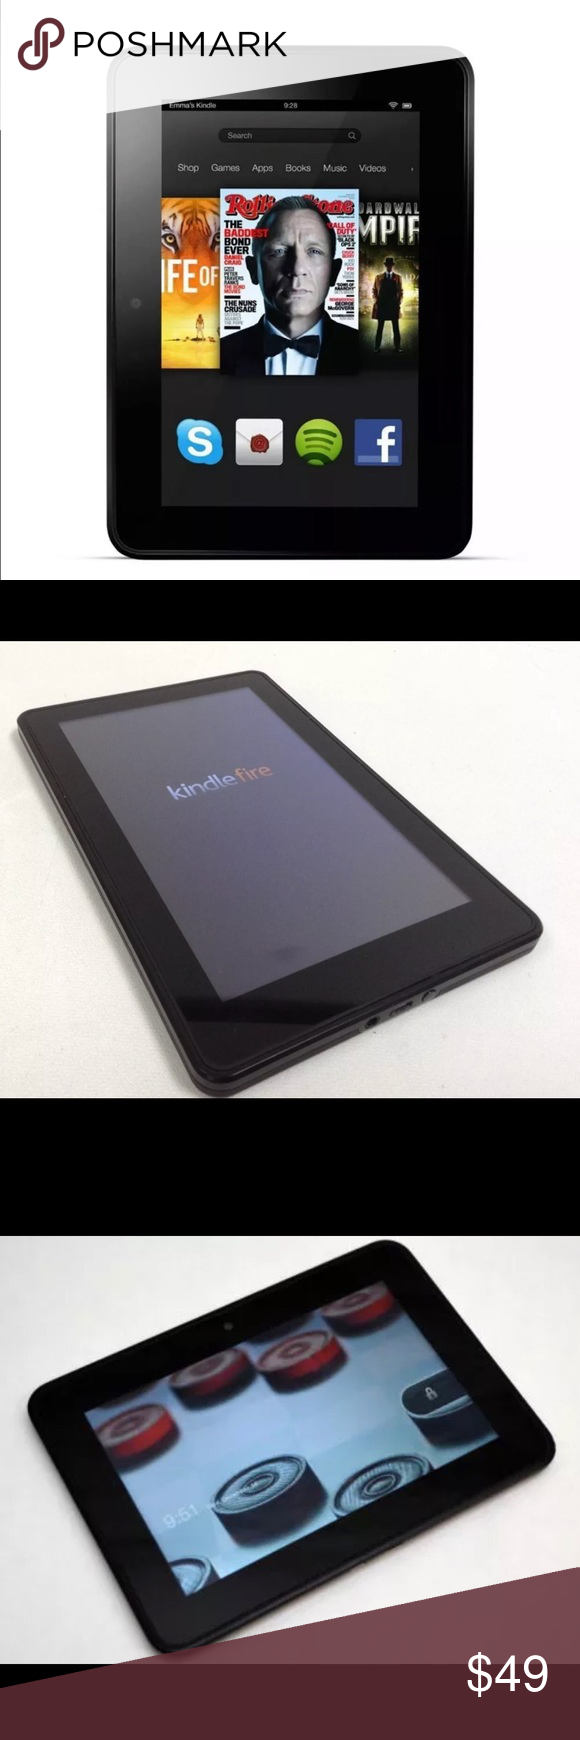 Amazon Kindle Fire HD 7 Amazon Kindle Fire 7 inch 16 GB in